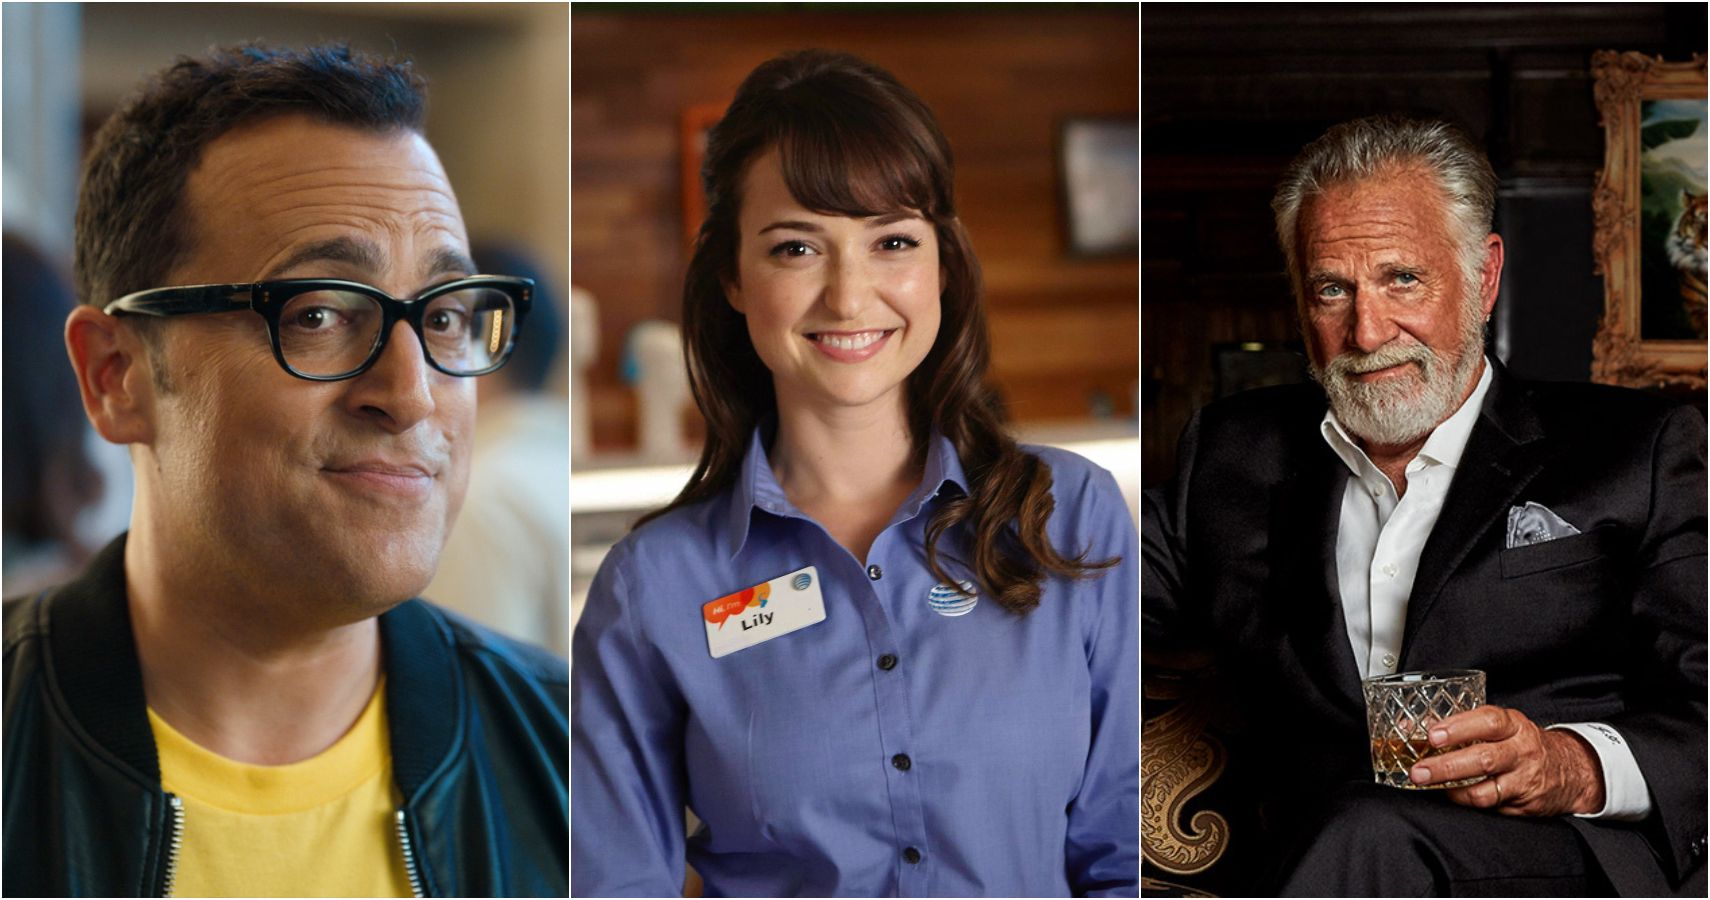 10 Of The Most Popular TV Commercial Actors We All Love